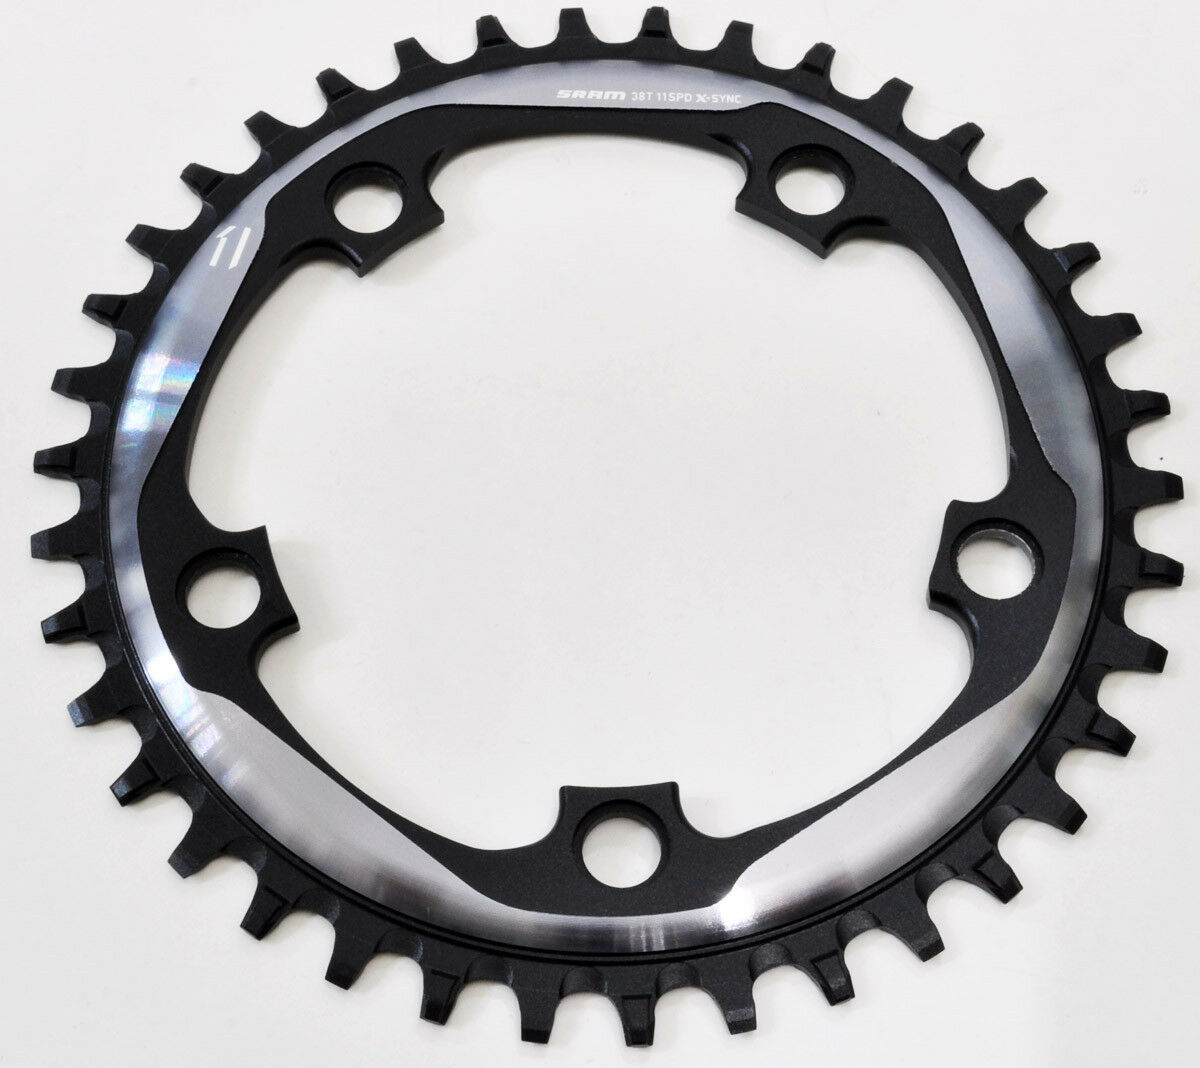 SRAM FORCE 1 CX1 CycleCross X-Sync Narrow Wide Chainring 38T 10 11 Spd BCD 110mm